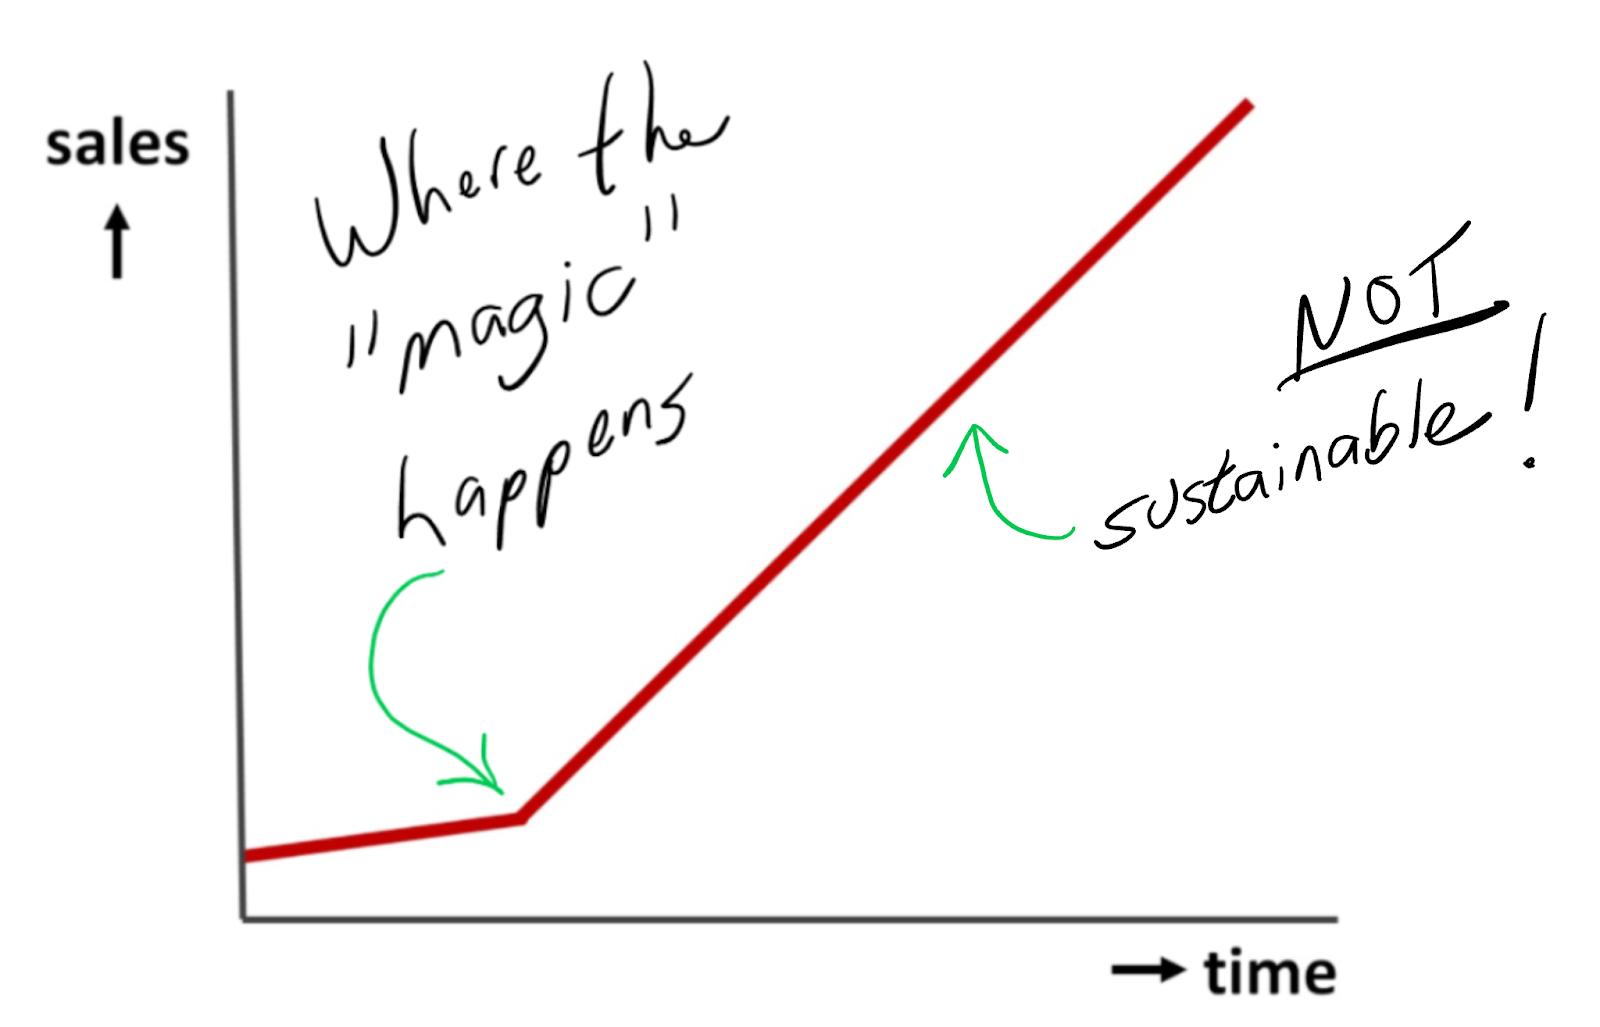 conceptual-graph-of-sales-over-time